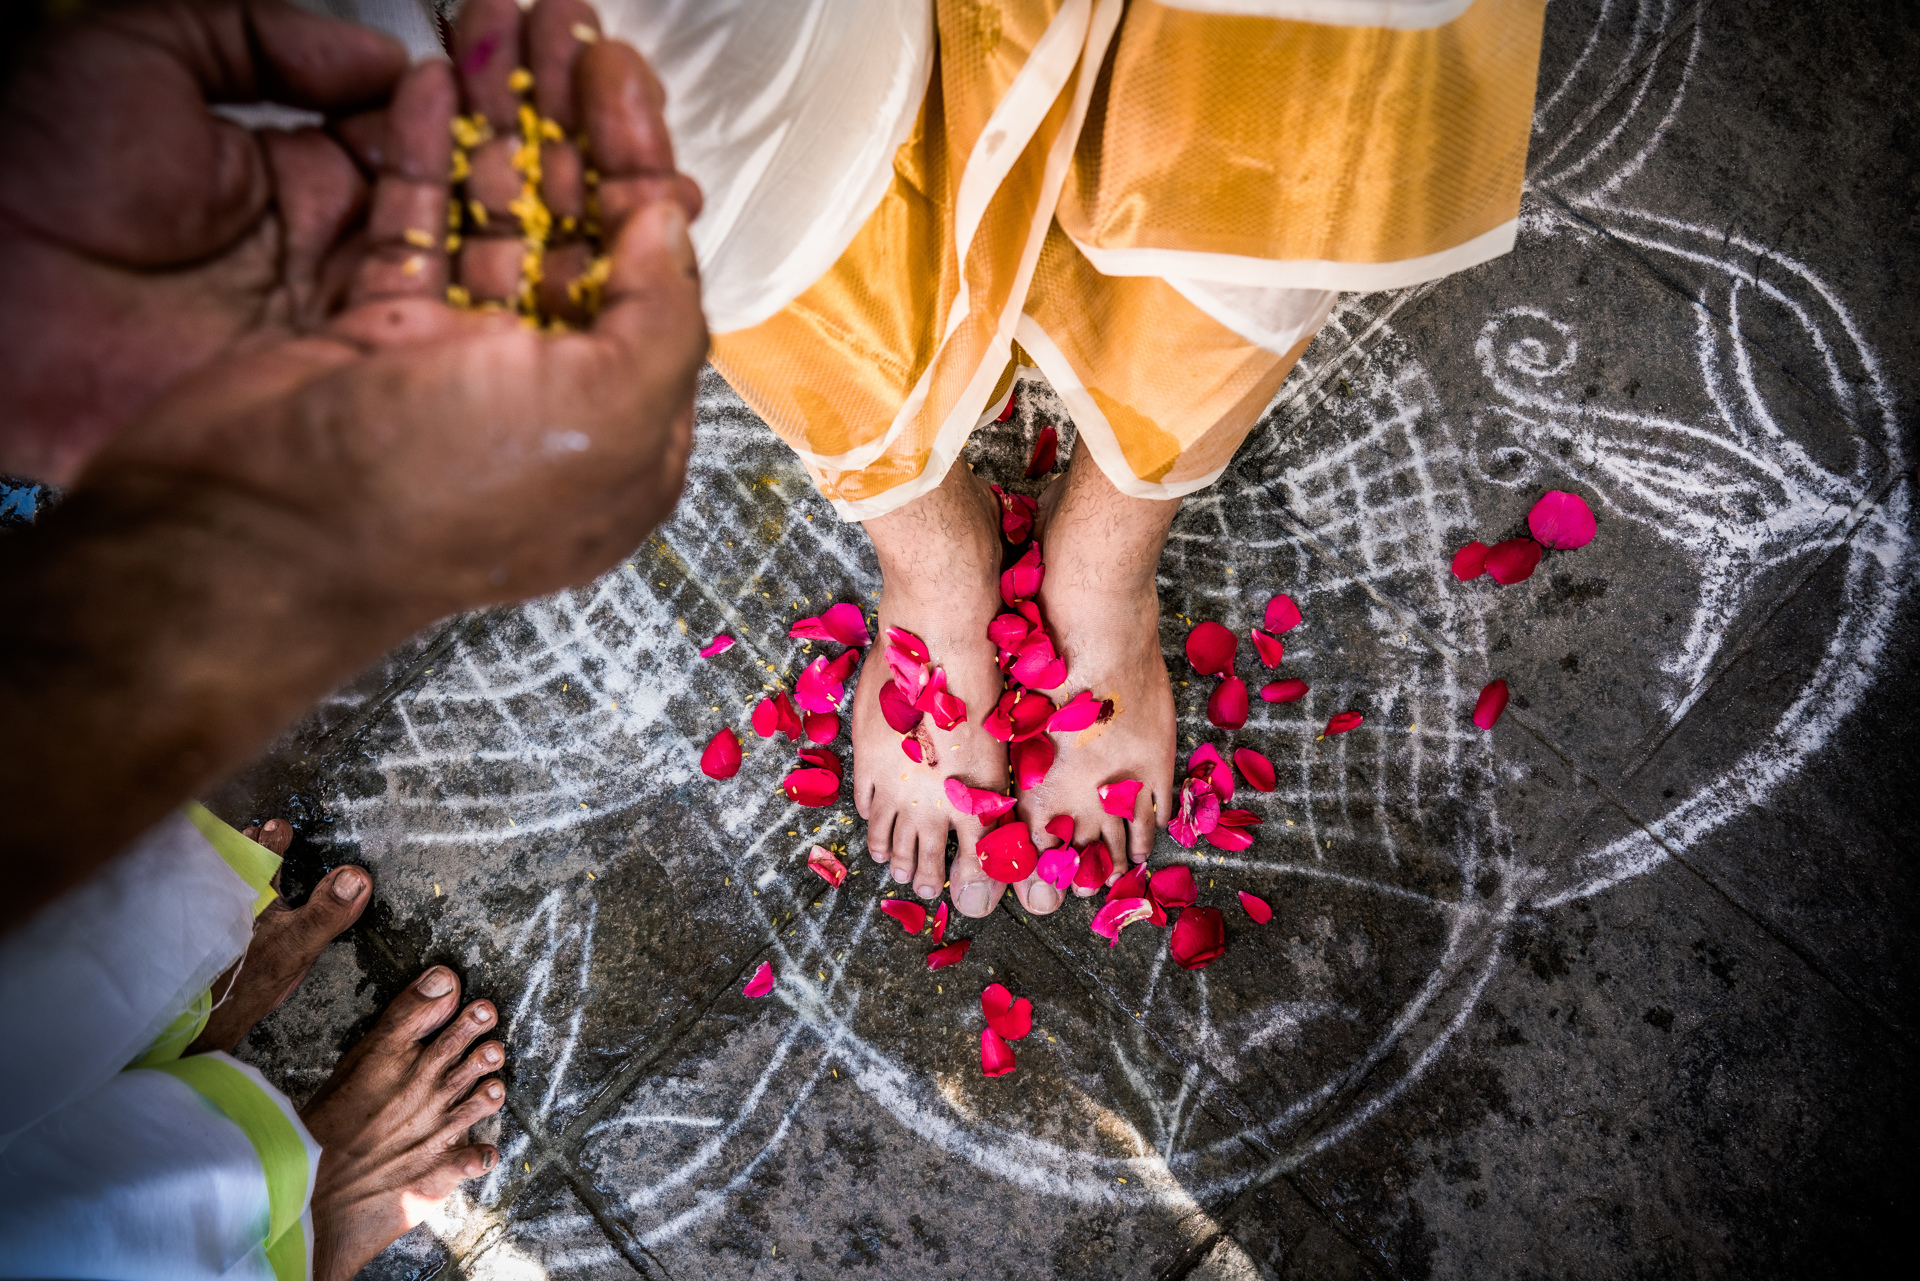 Red rose petals around grooms feet - photo  by Sephi Bergerson